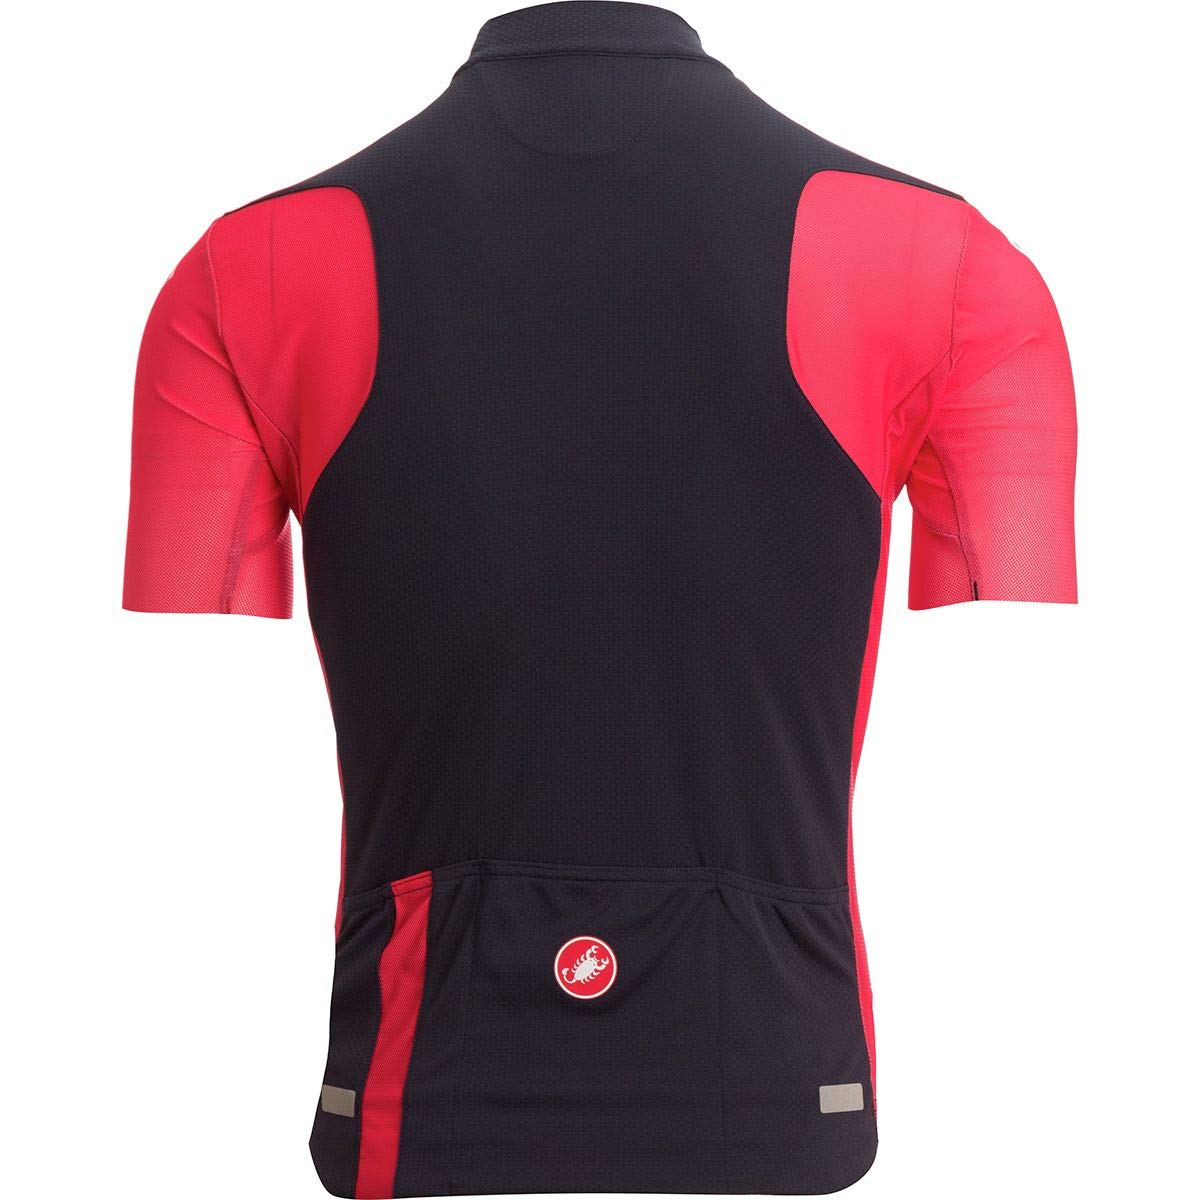 Amazon.com   Castelli Entrata 3 Limited Edition Full-Zip Jersey - Men s    Sports   Outdoors 0a21d7332